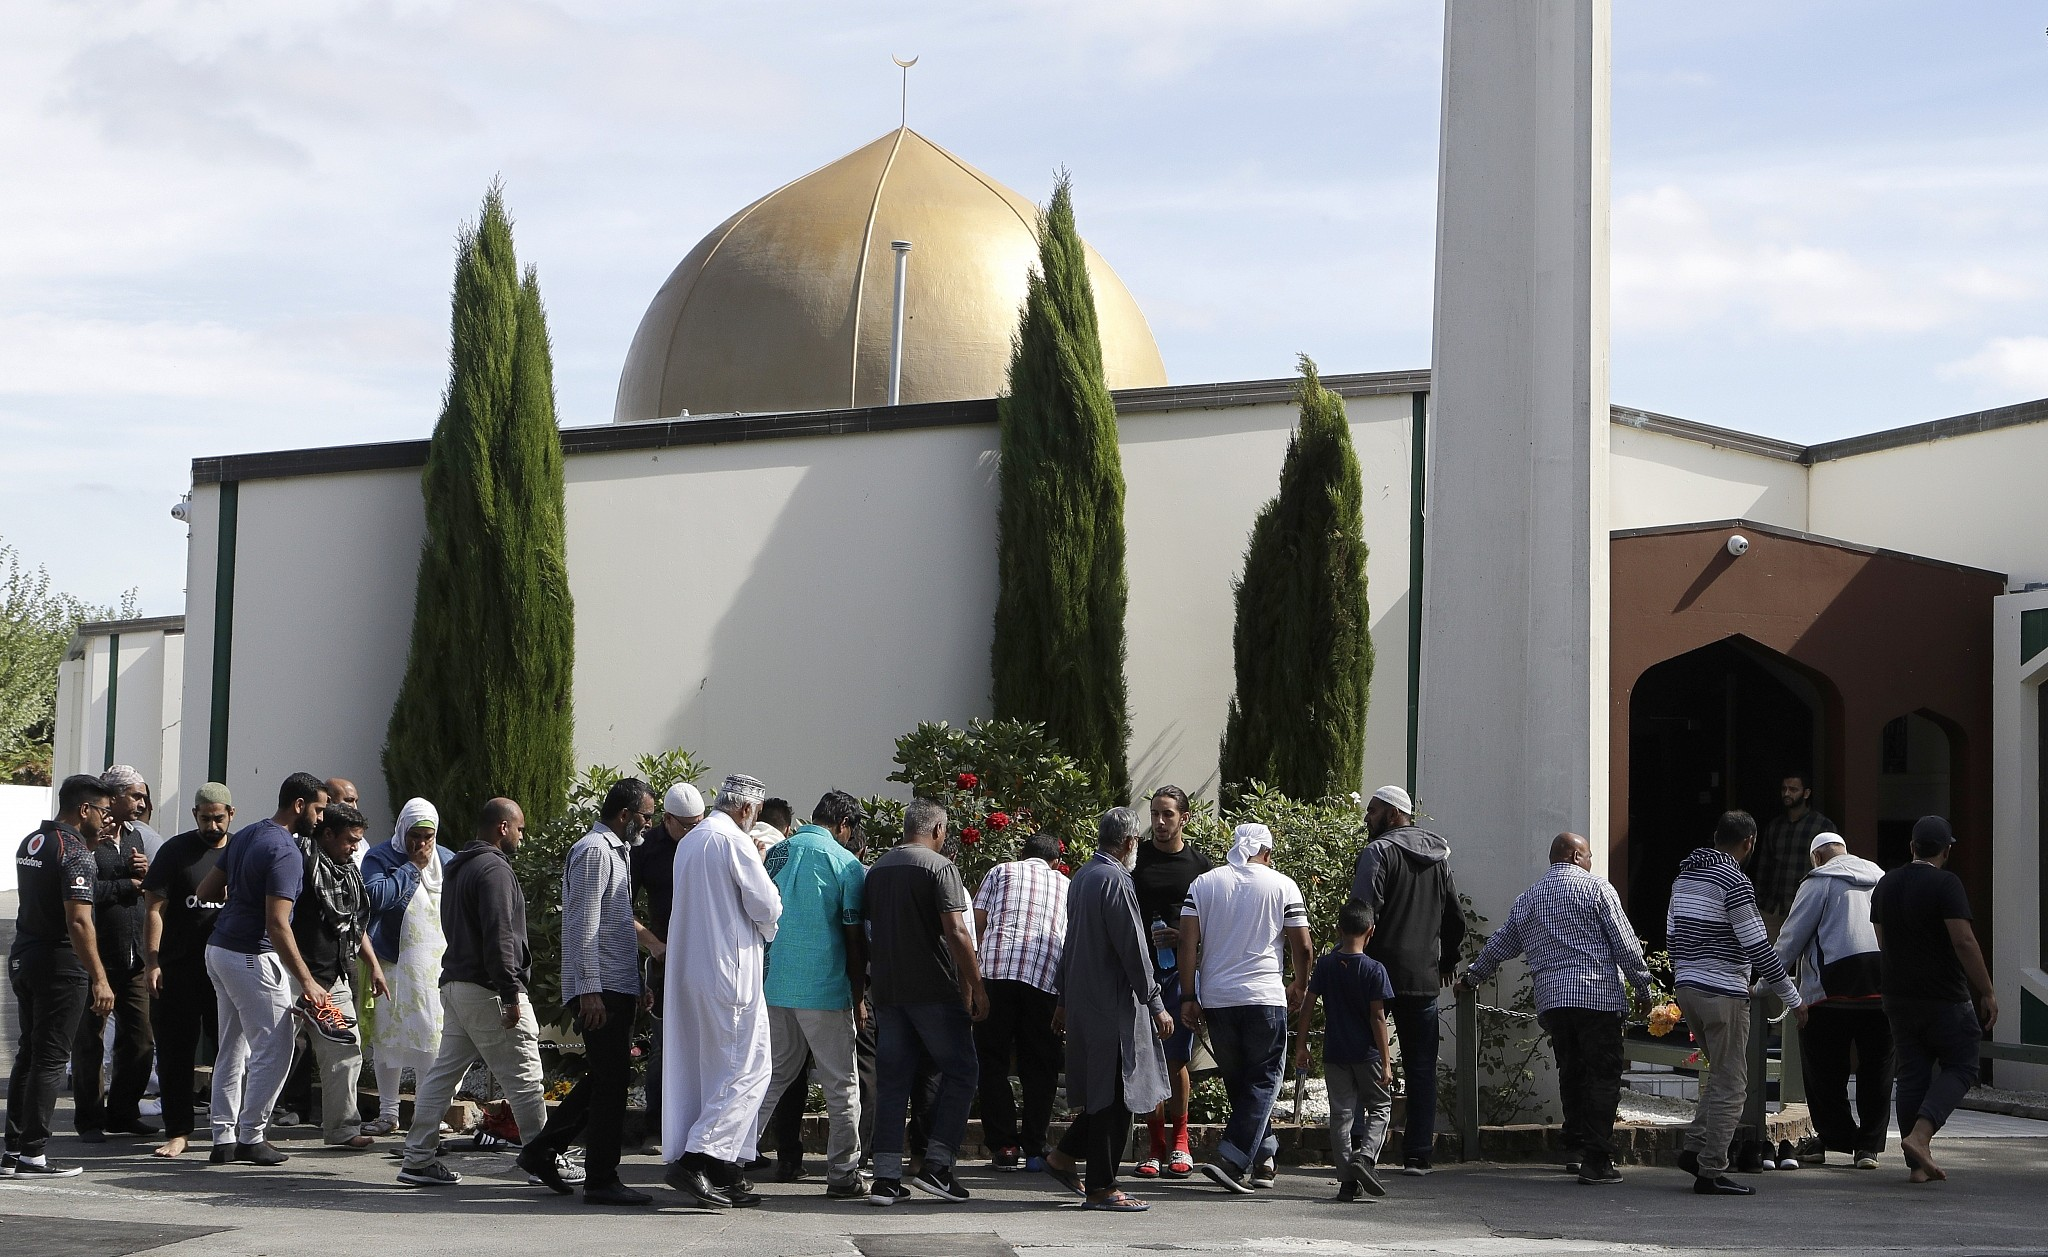 Judge Orders Psychiatric Test for Christchurch Shooting Suspect